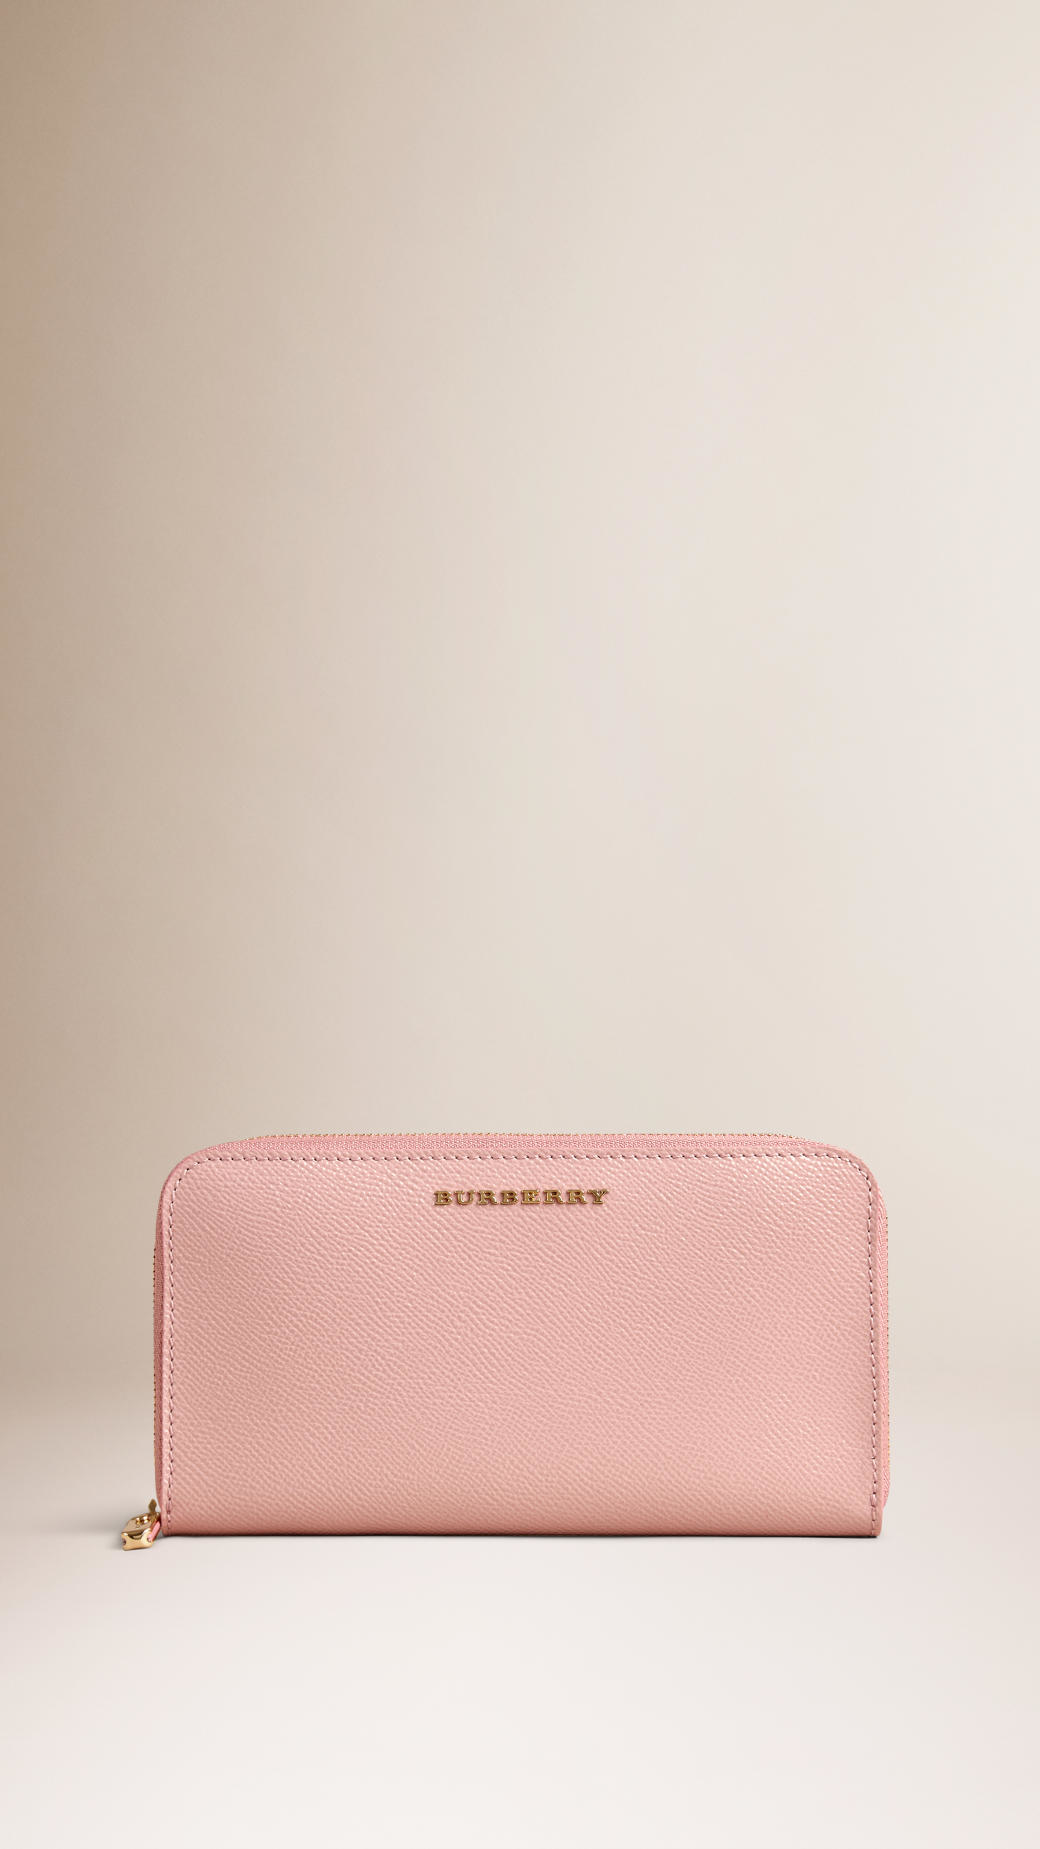 5ea76a456228 Lyst burberry patent london leather ziparound wallet ash rose in pink jpg  1040x1849 Ash rose pink